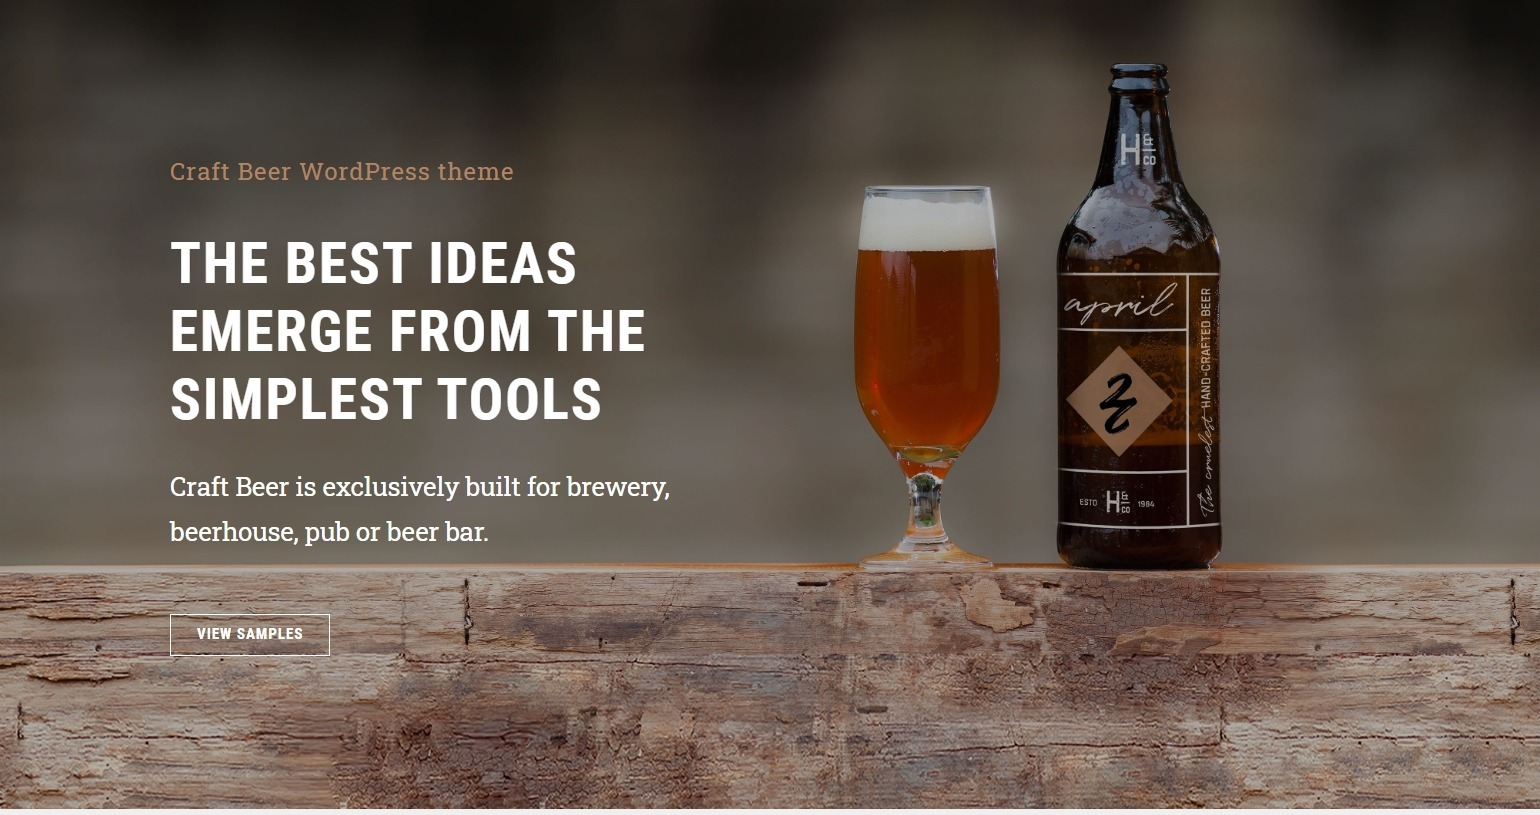 Craft Beer Theme for WordPress Based Brewery Websites